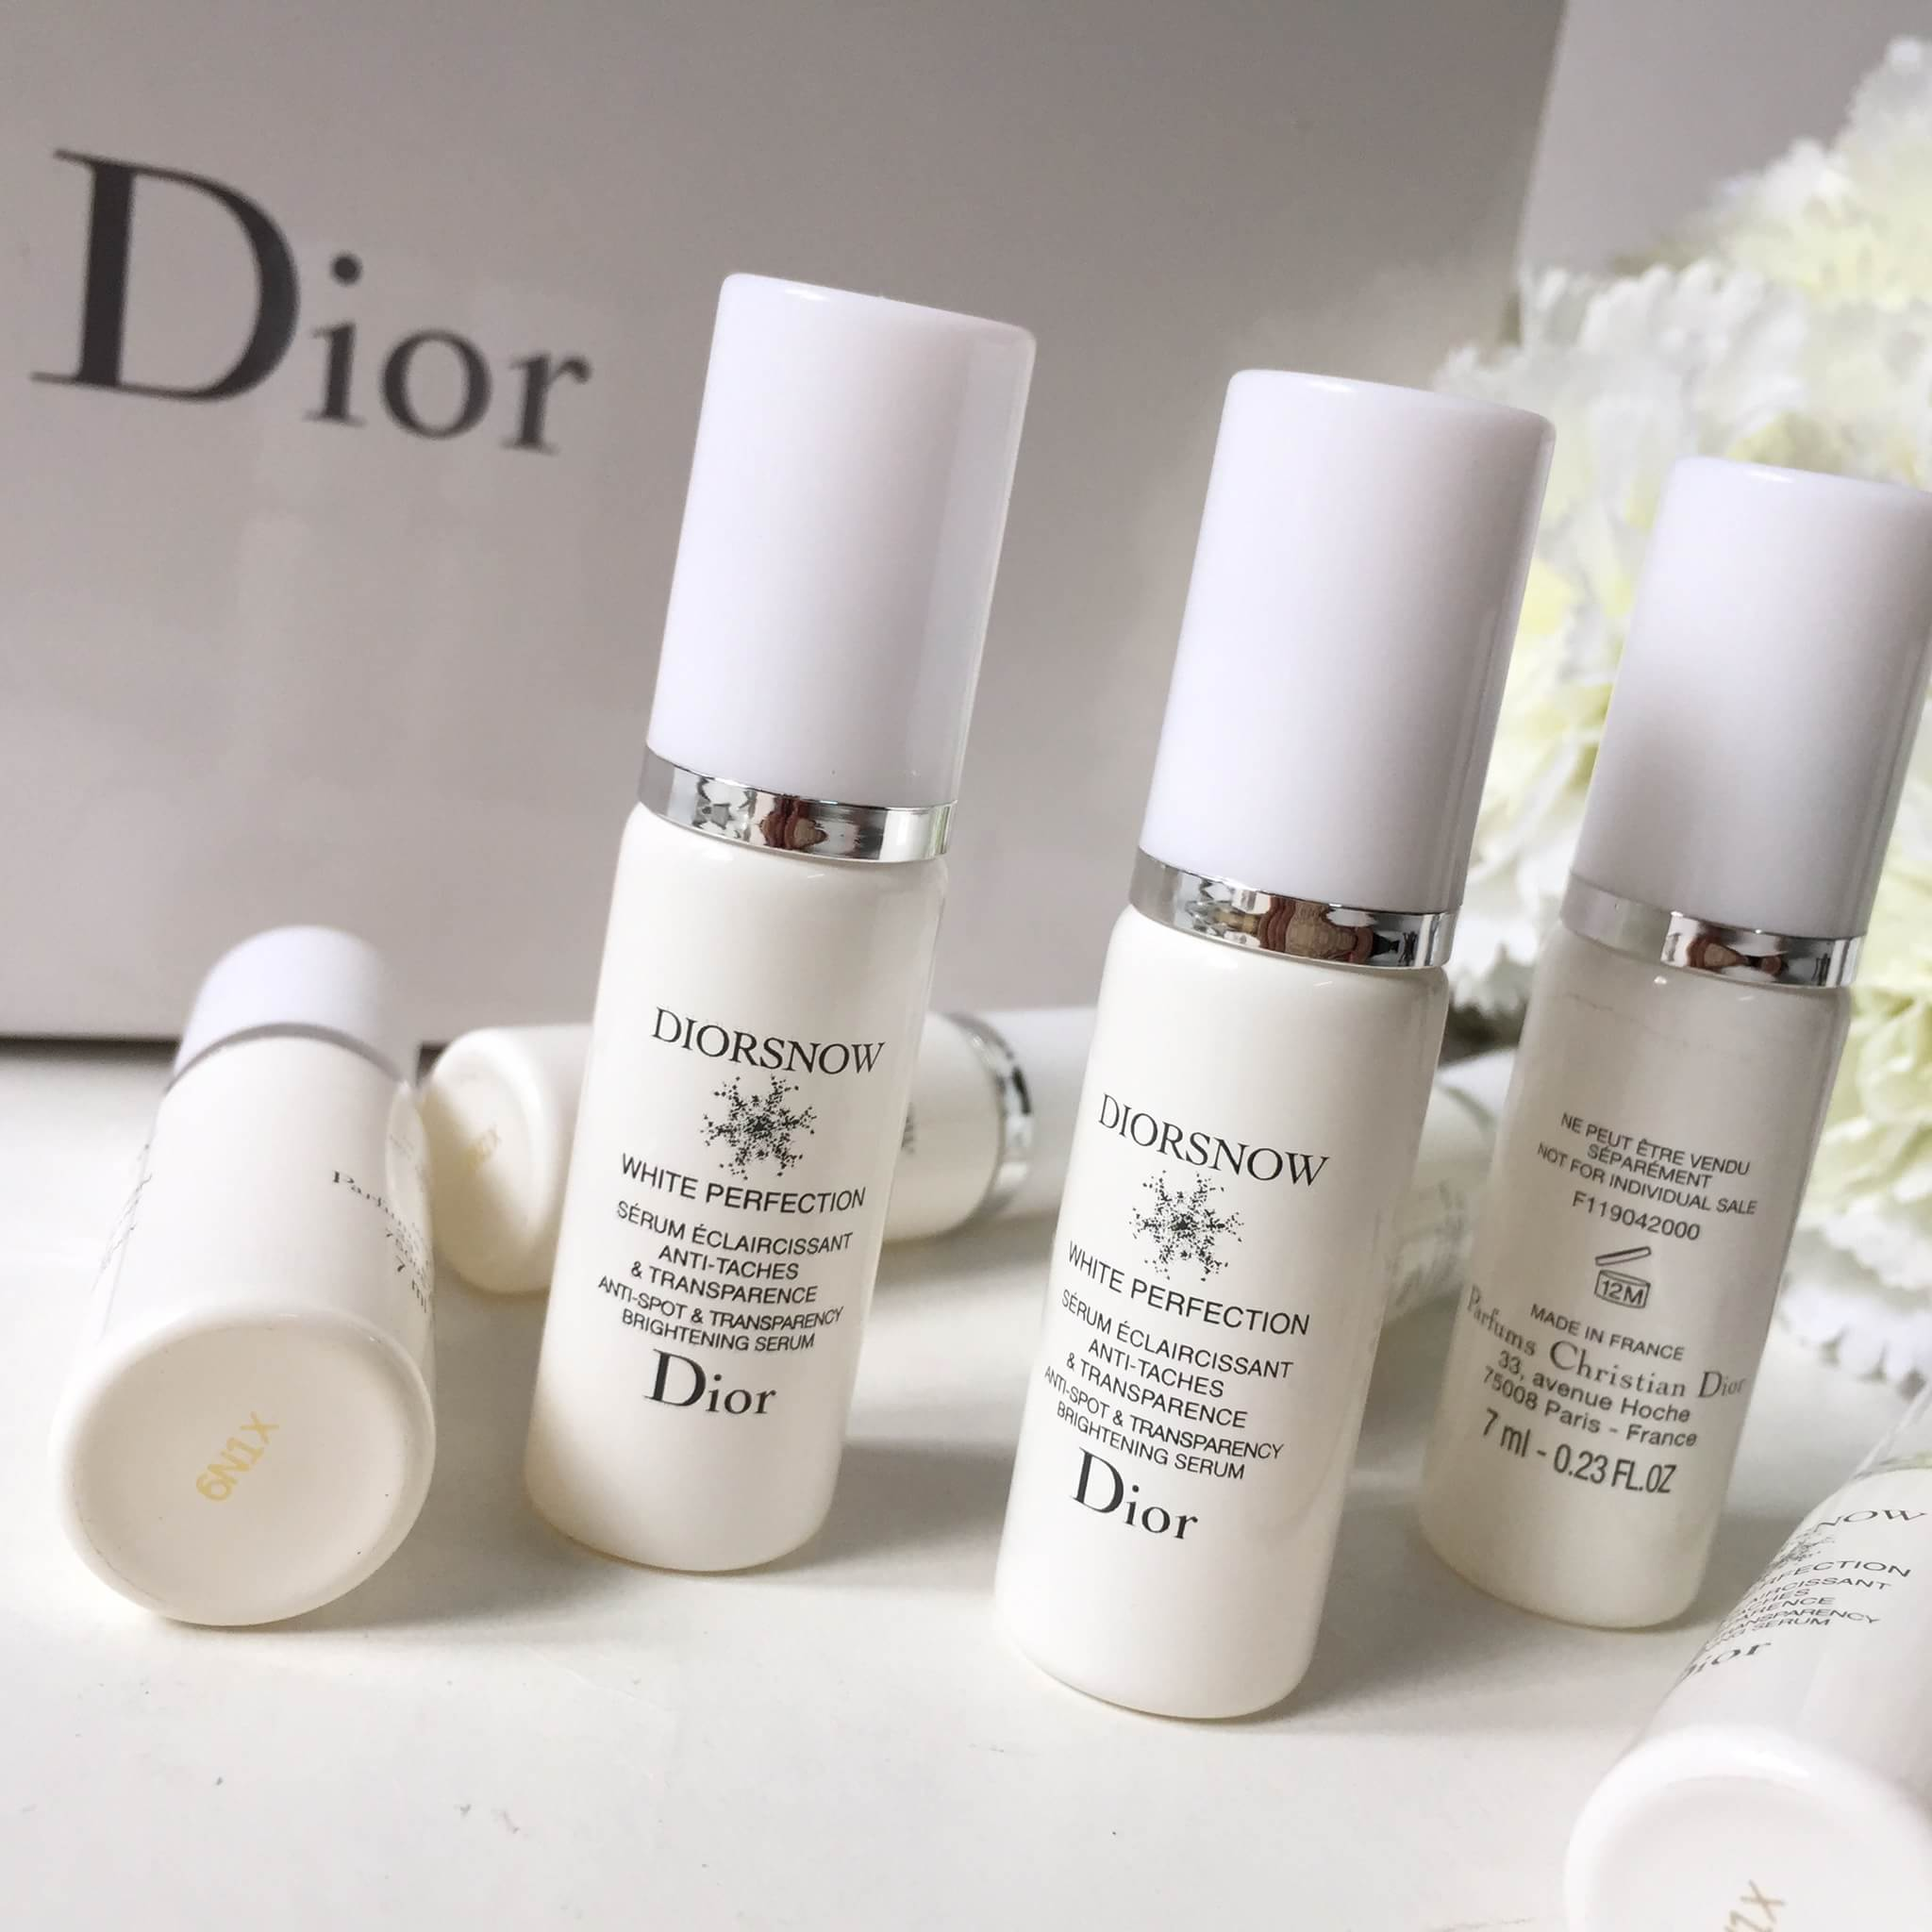 ผลการค้นหารูปภาพสำหรับ Dior Diorsnow White Perfection Anti-Spot & Transparency Brightening Serum 7ml.